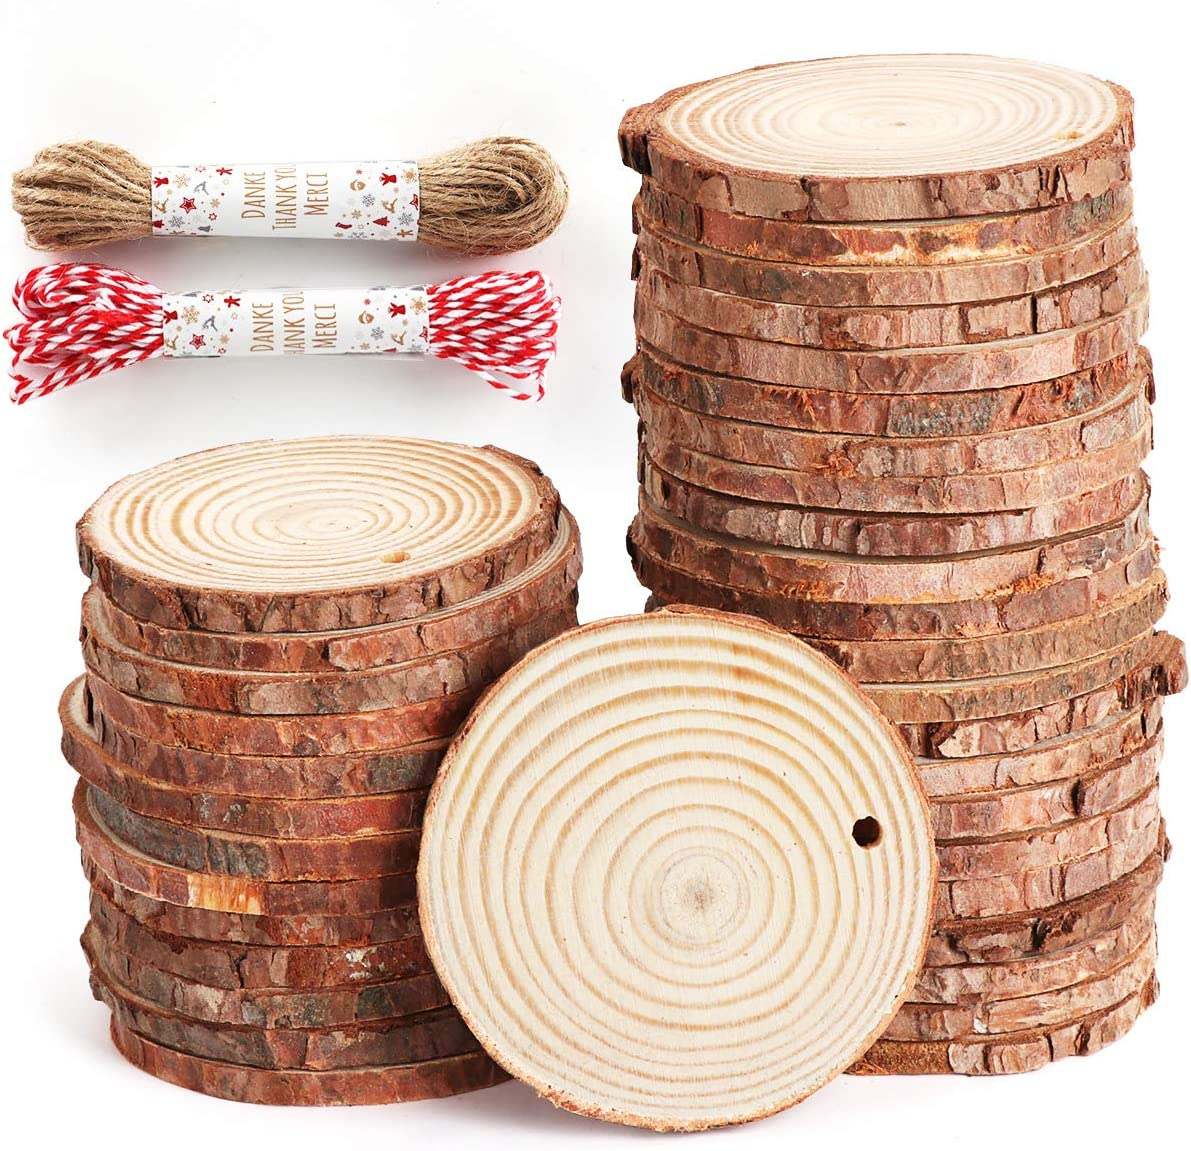 """ilauke Unfinished Wood Slices 50 Pcs 2.4""""-2.8"""" Natural Wood Rounds with Pre-drilled Hole and 66 Feet Twine String for Christmas Crafts Ornaments Party Wedding Decoration"""